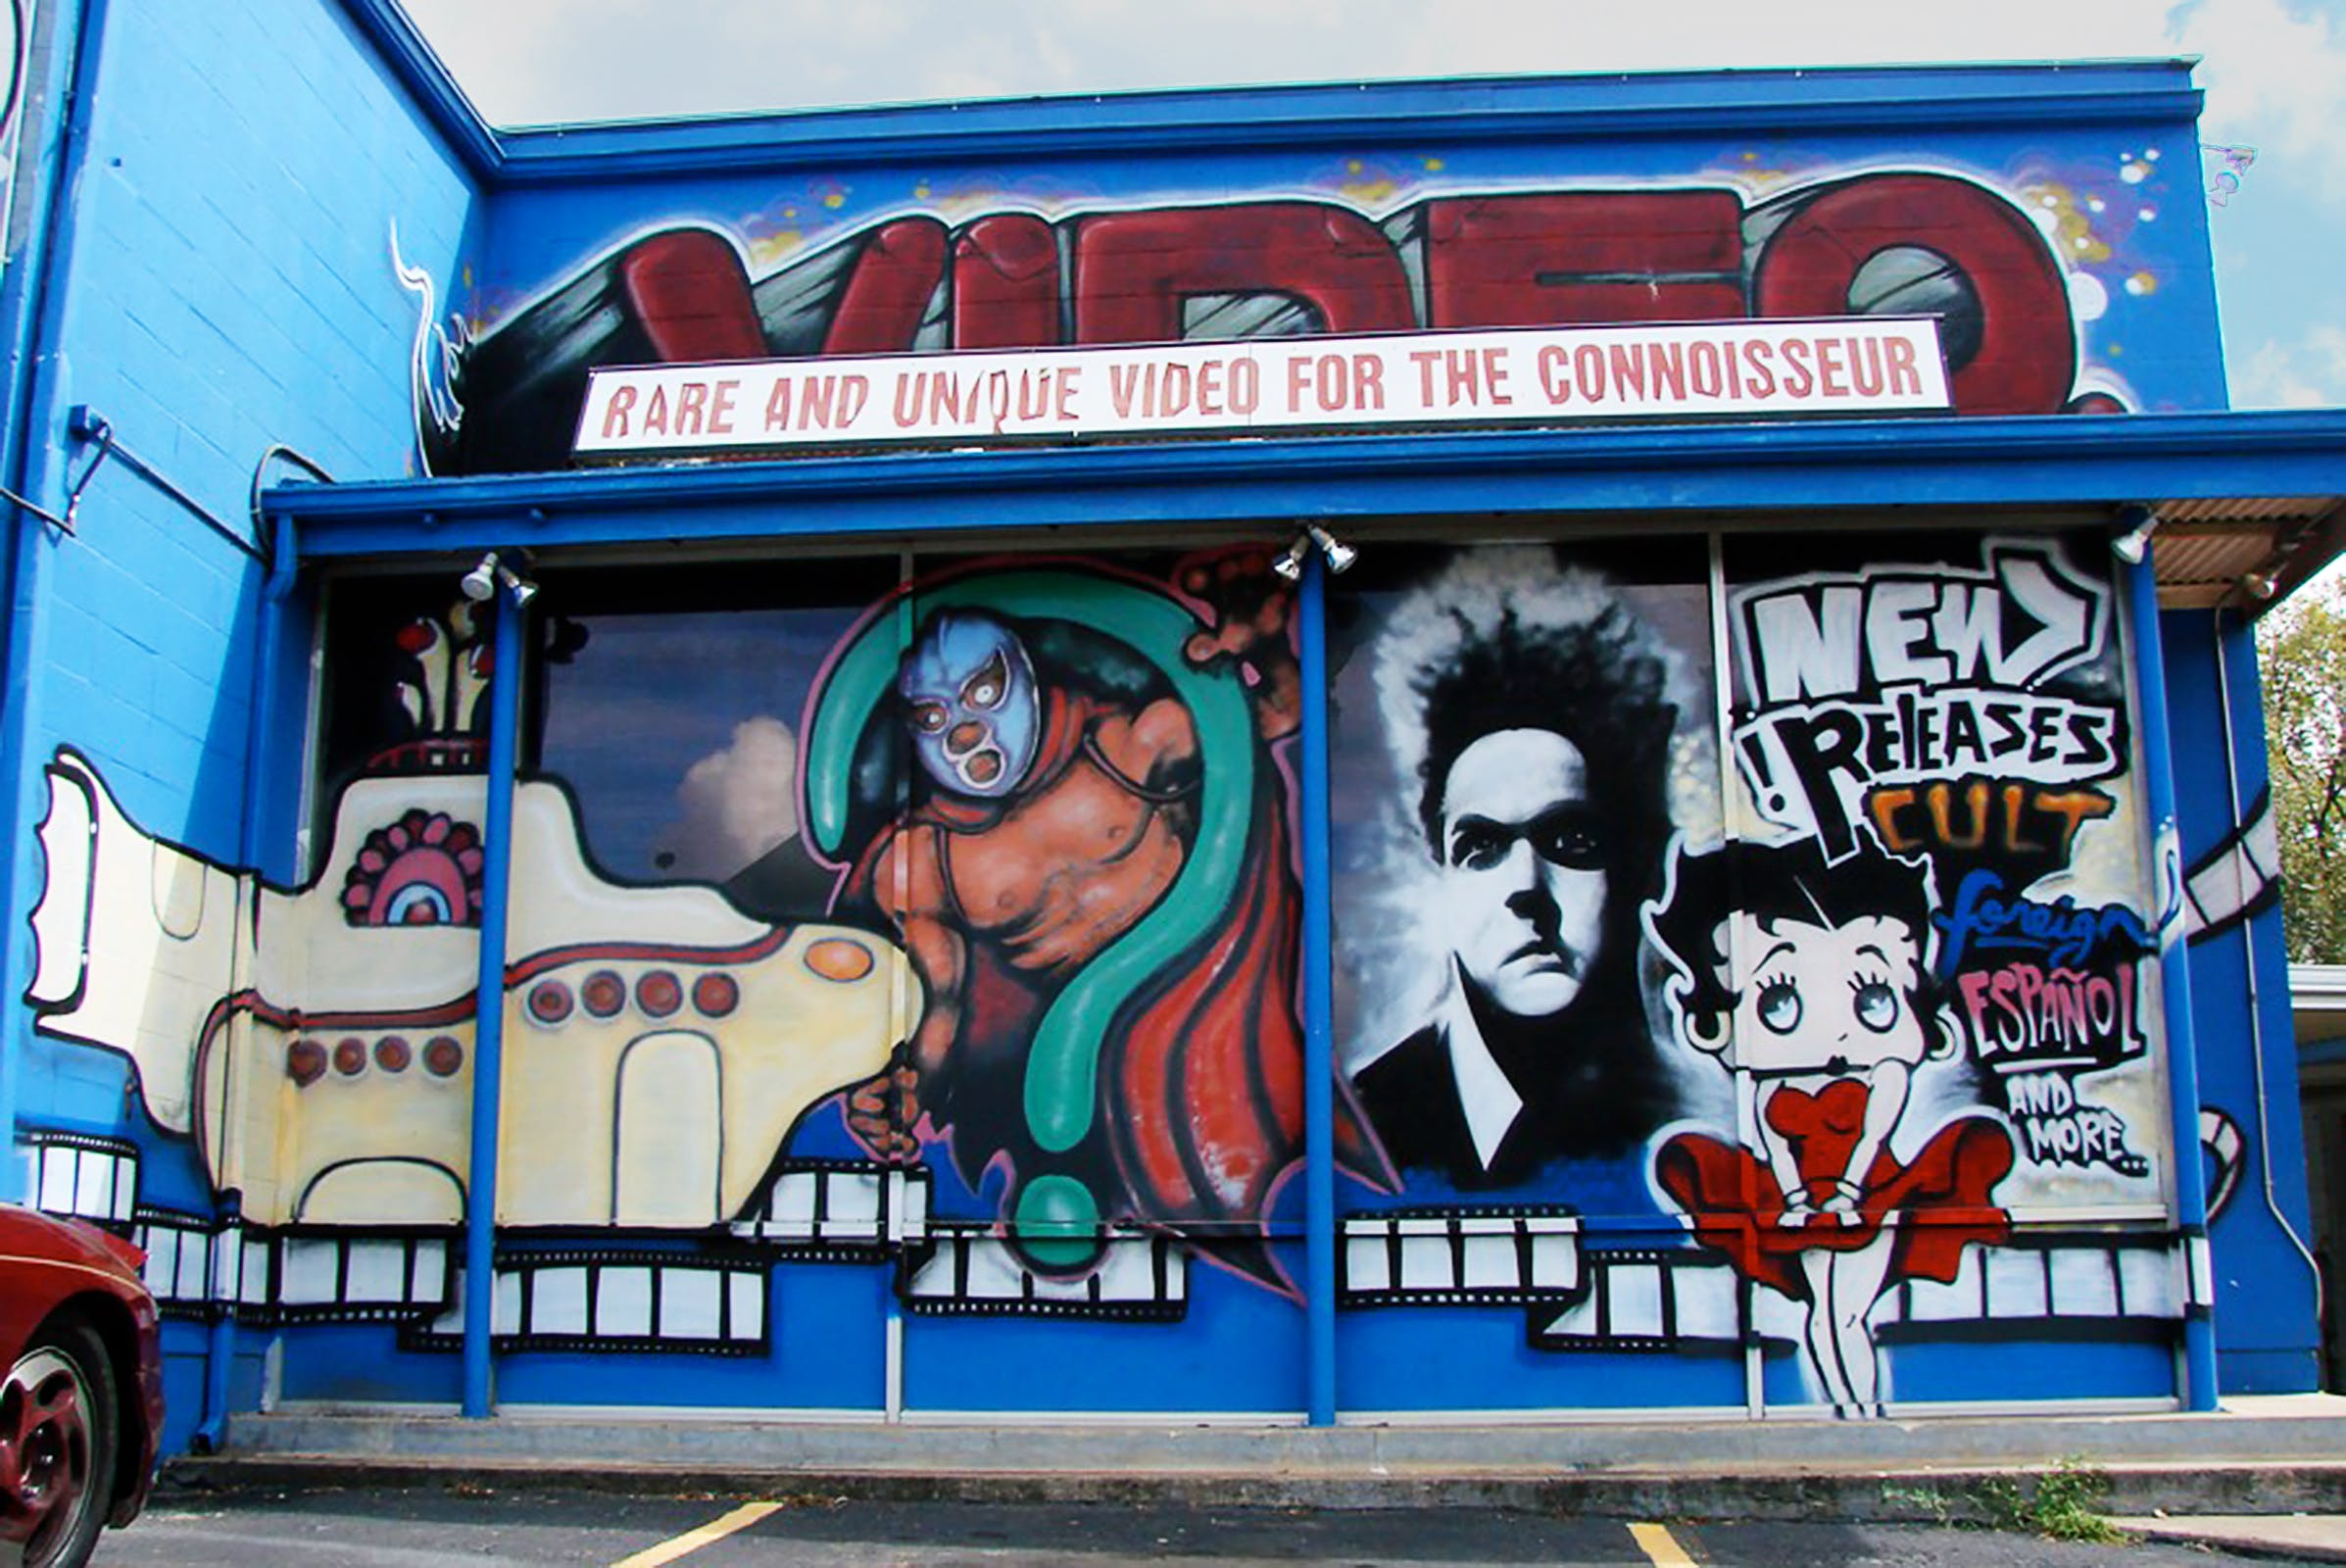 i-luv-video-store-exterior